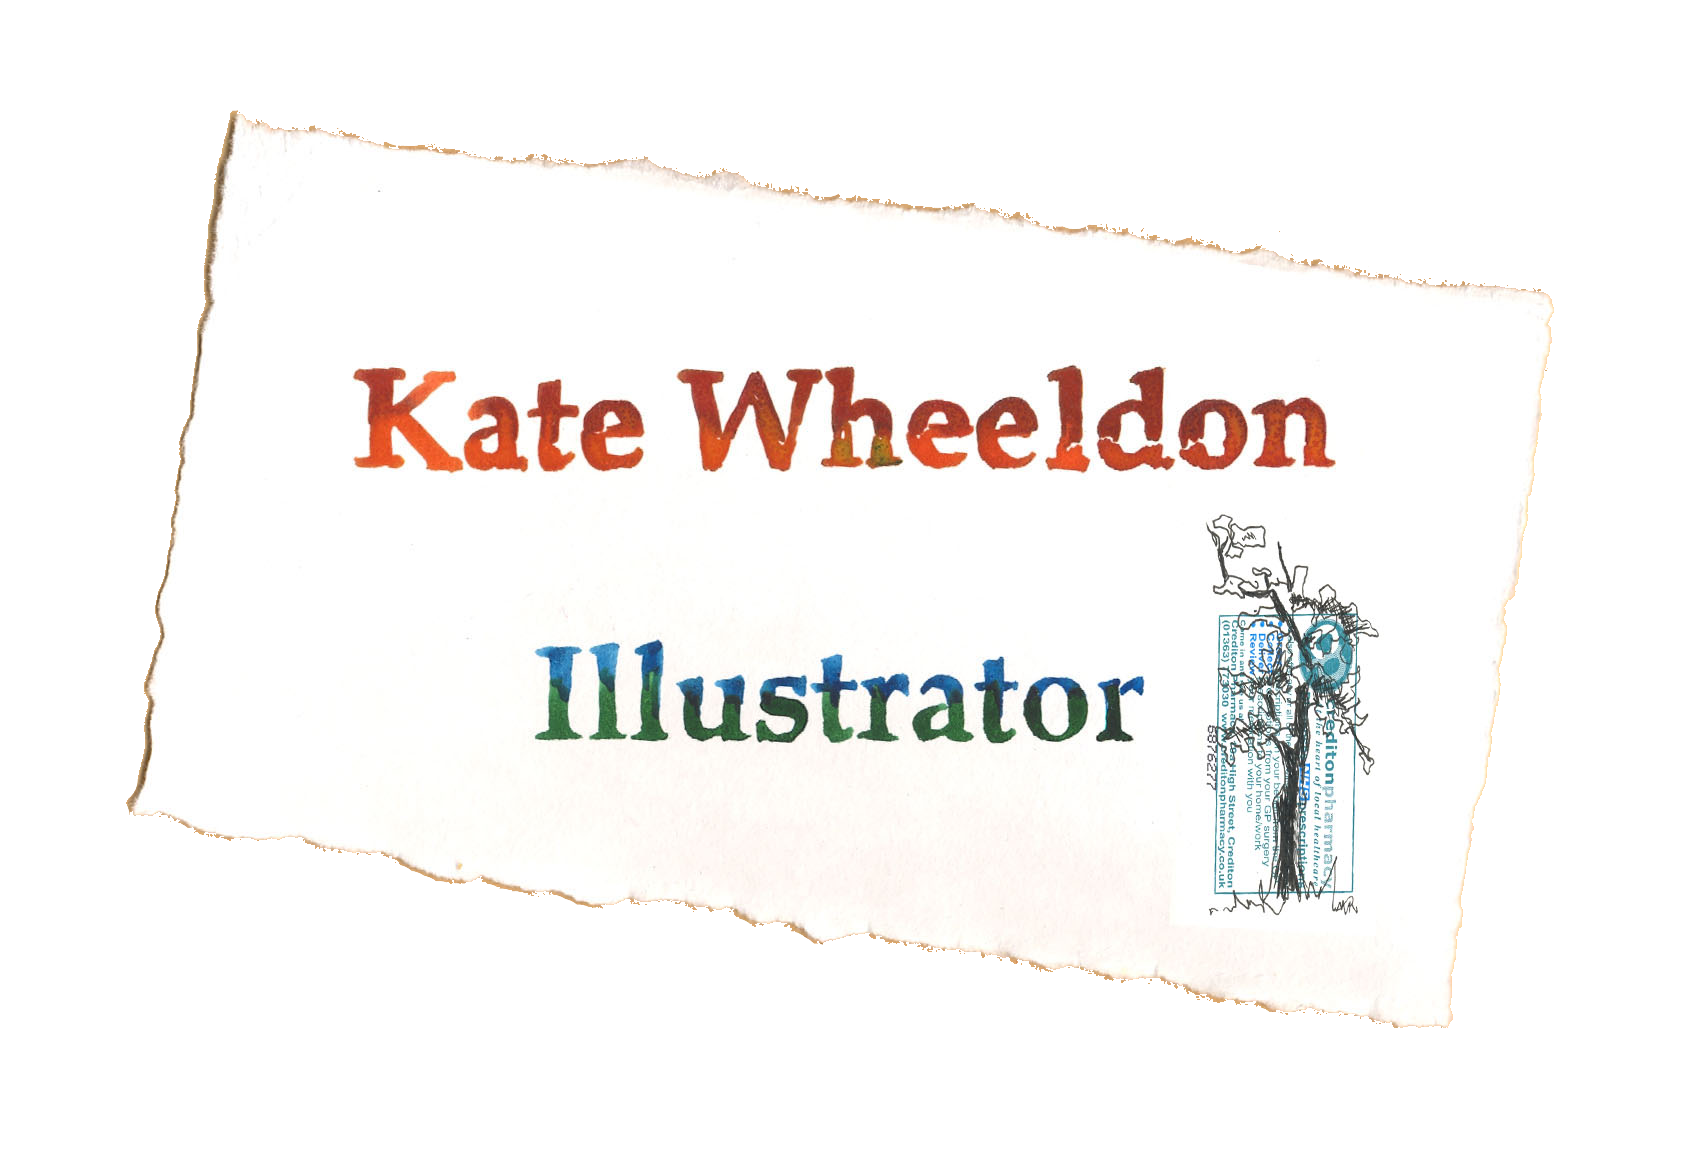 Kate Wheeldon: Illustrator